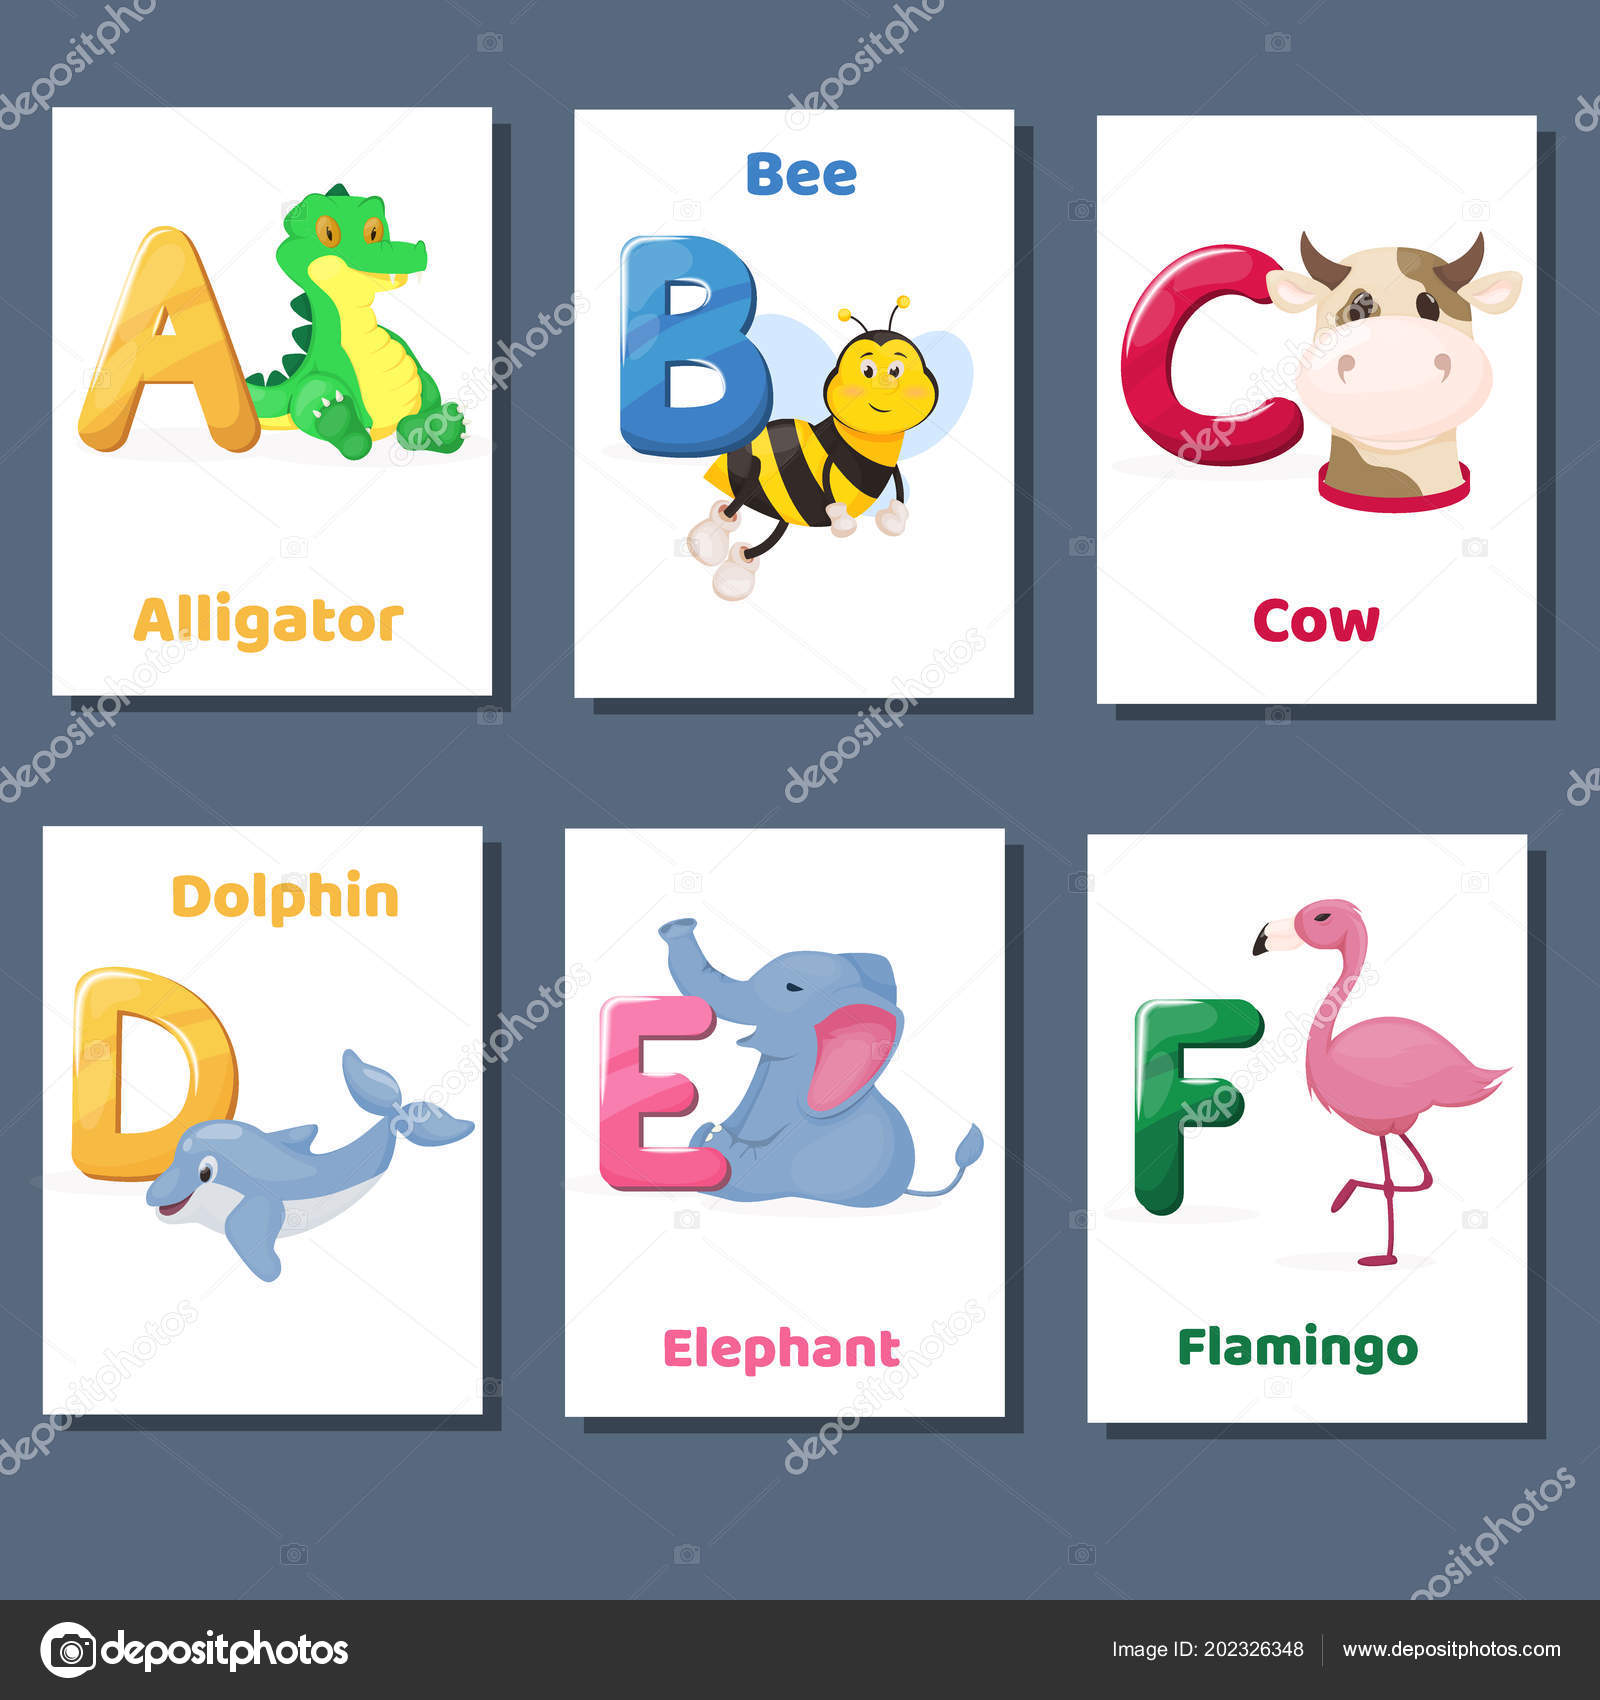 picture about Zoo Phonics Printable named Zoo phonics flash playing cards printable Alphabet printable